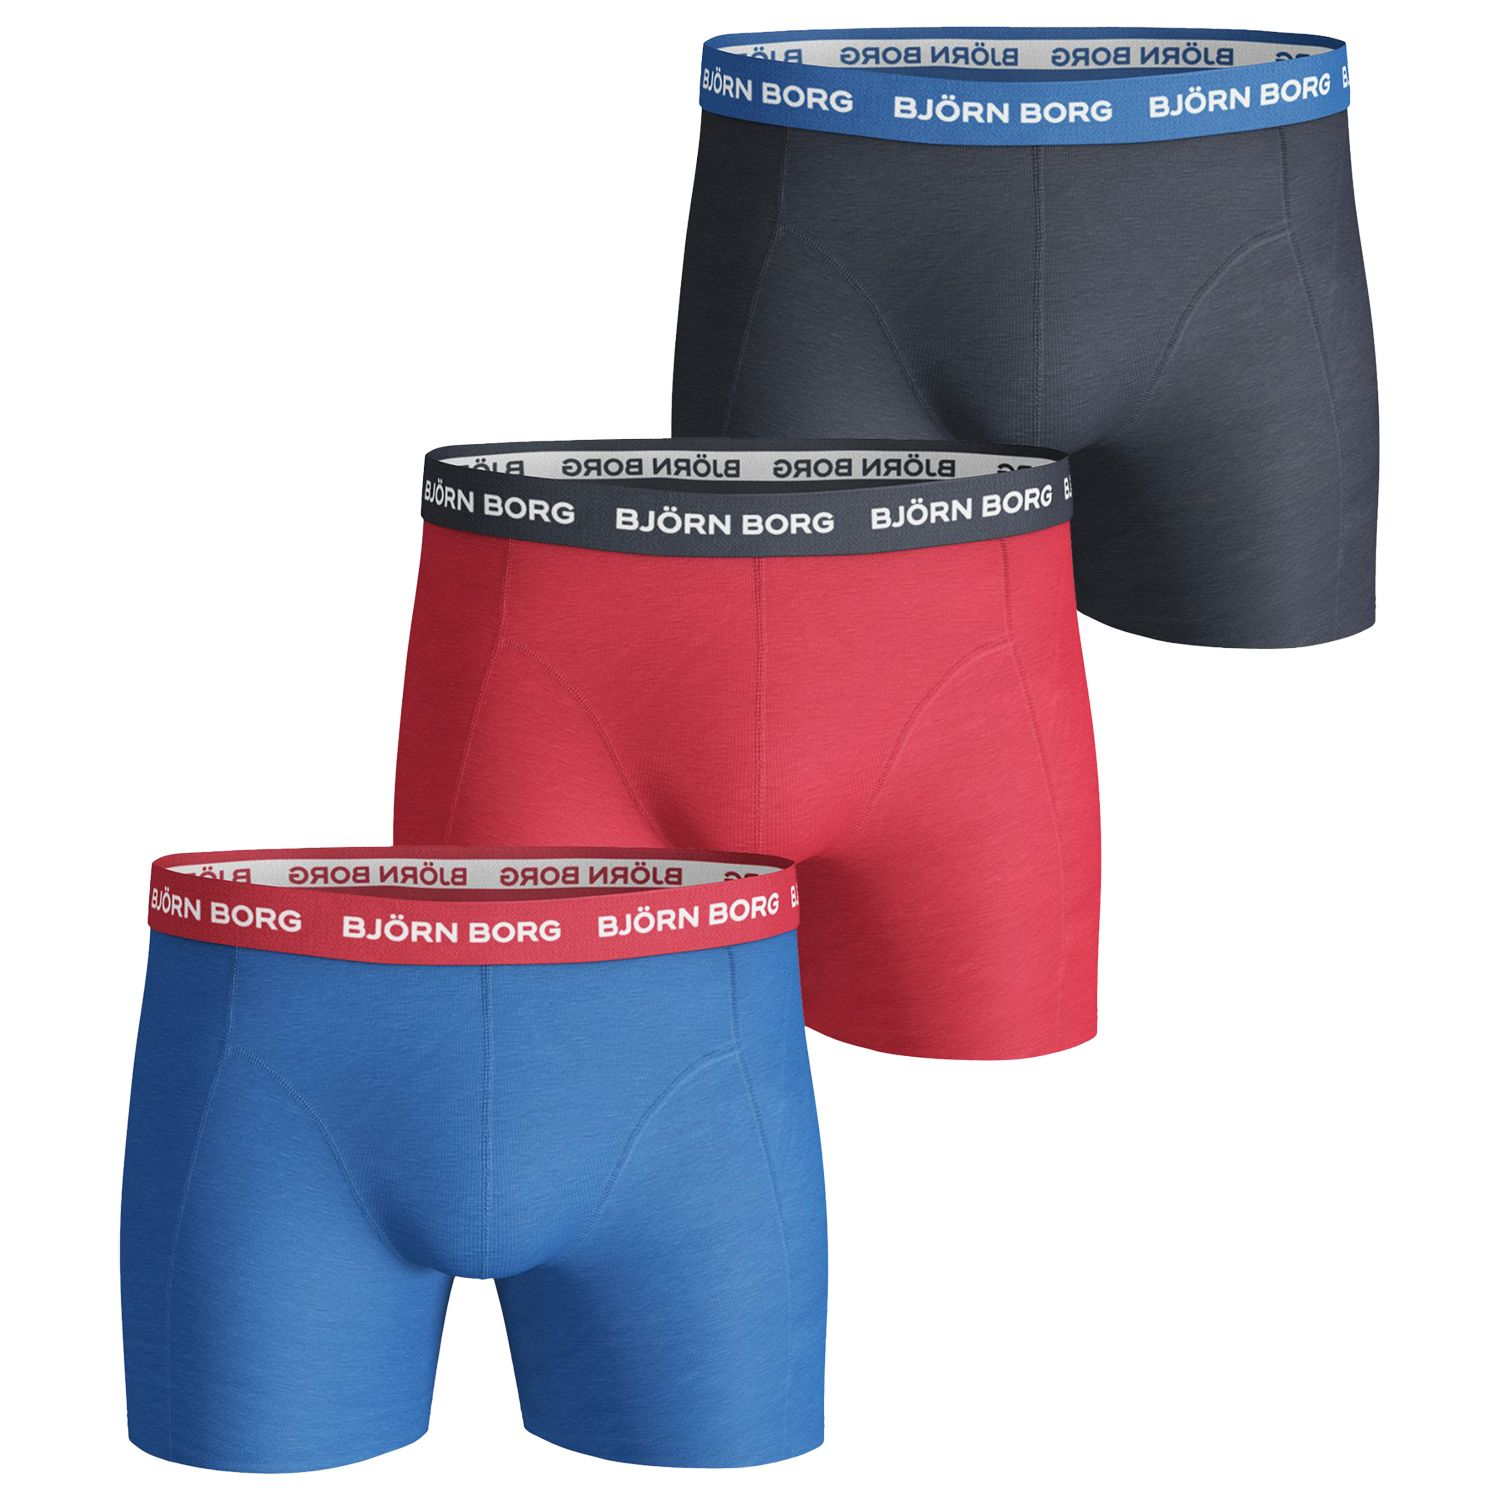 Bjorn Borg Björn Borg Noos Contrast Waistband Trunks, Pack of 3, Blue/Red/Black